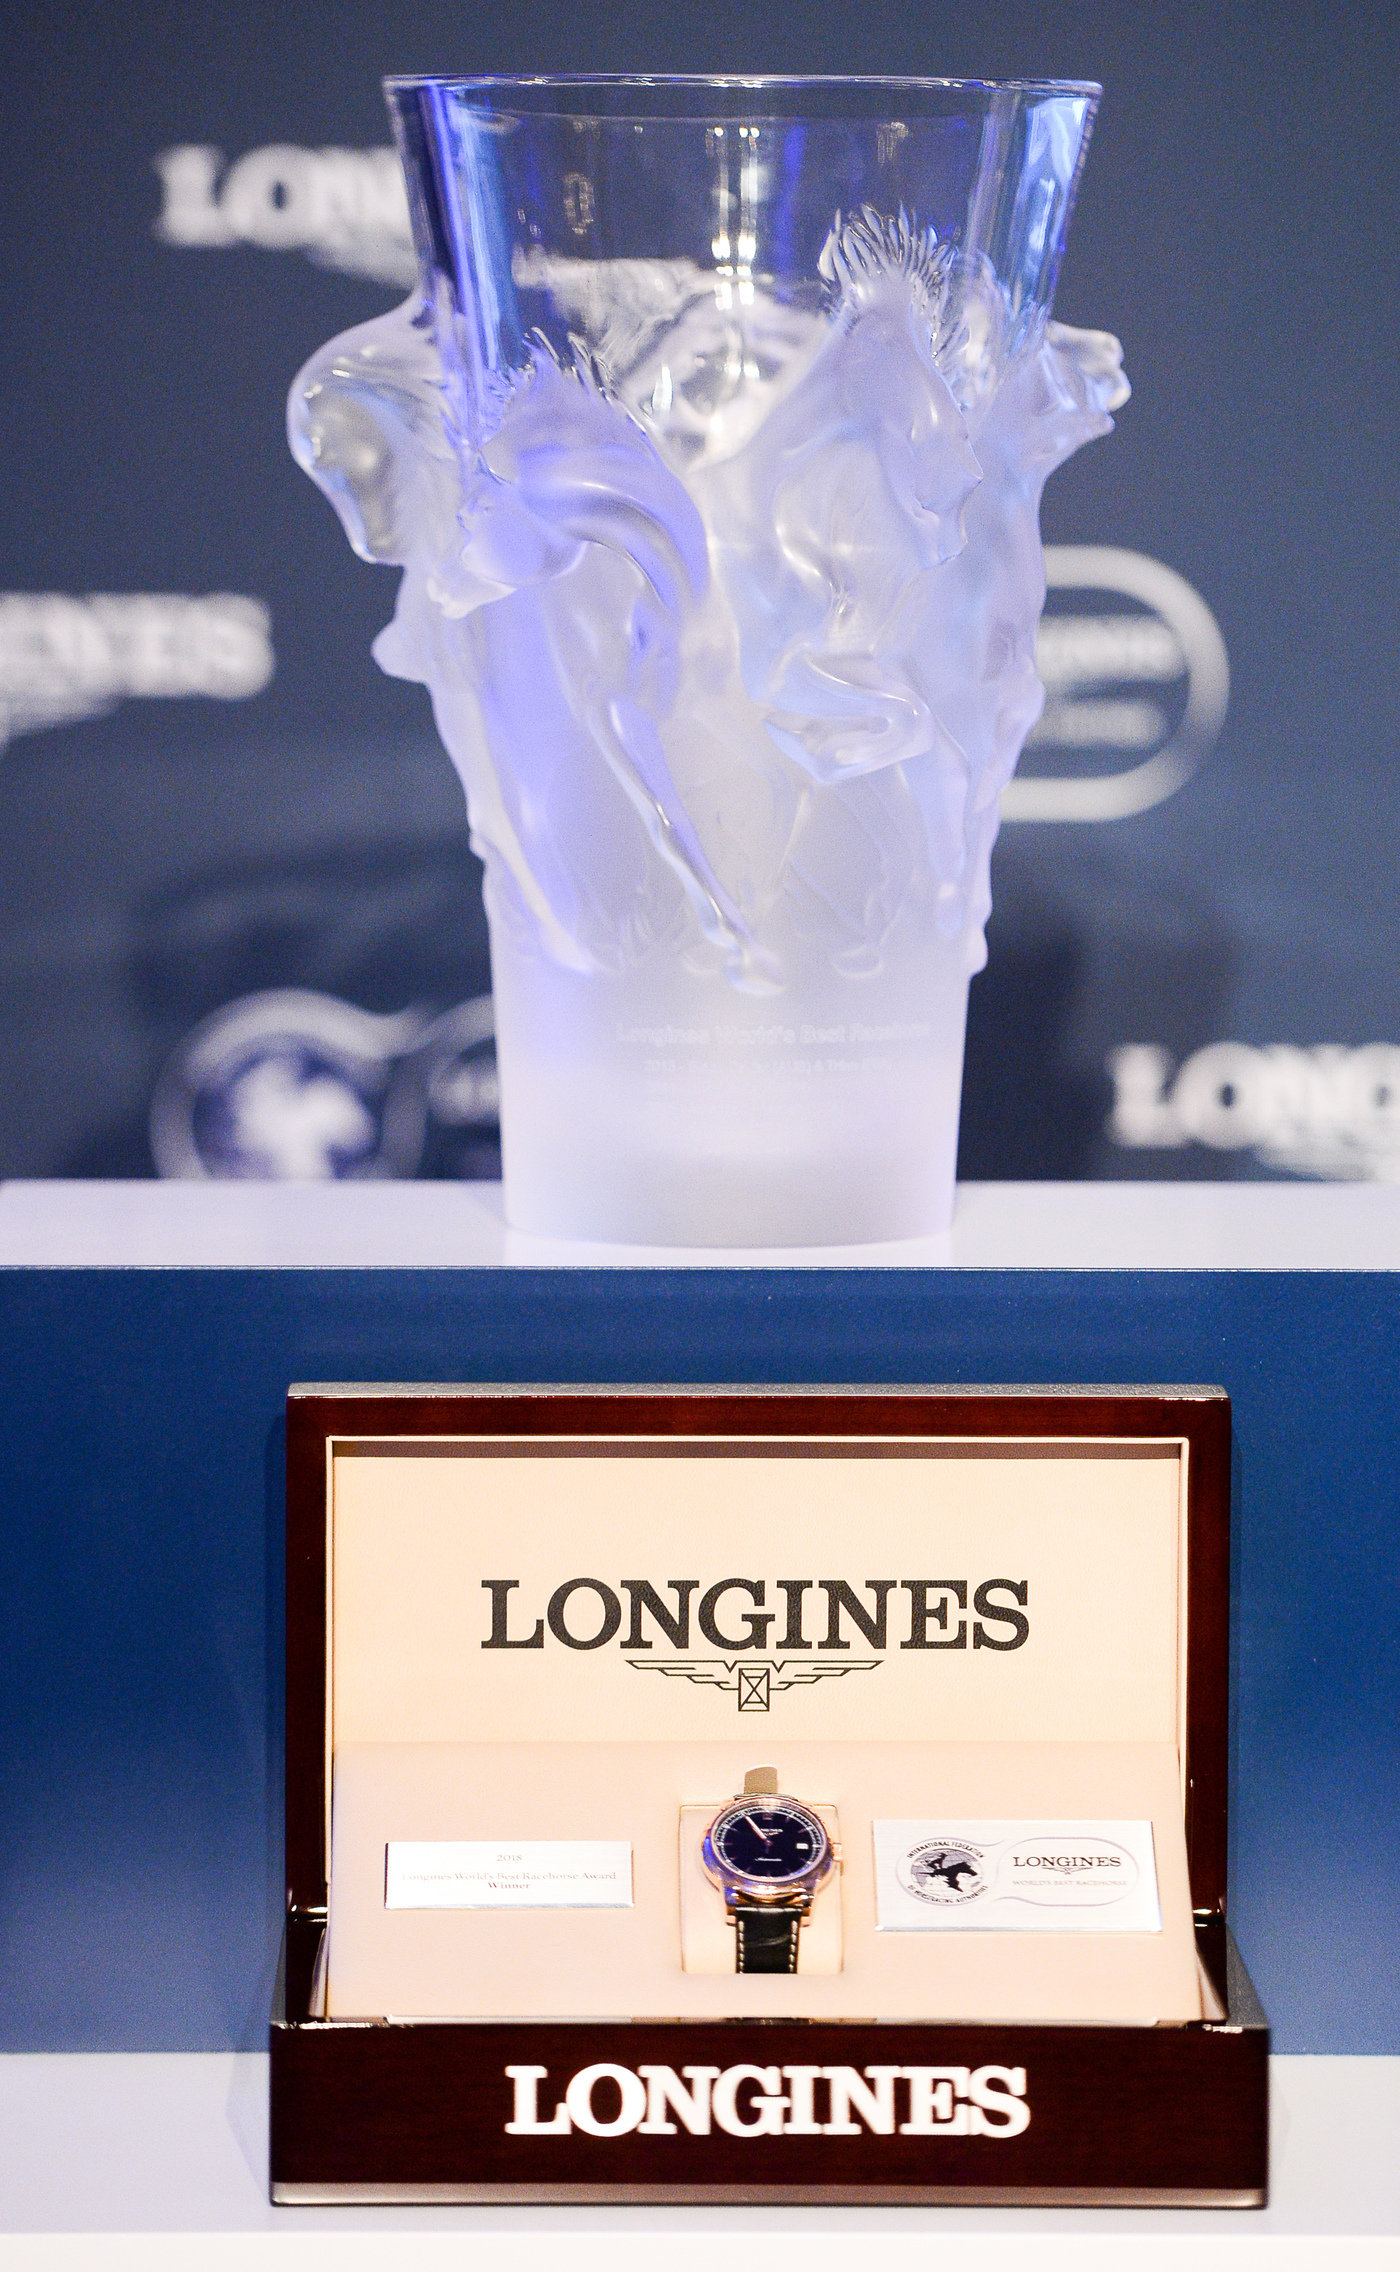 Longines Flat Racing Event: Longines World's Best Racehorse and Longines World's Best Horse Race Ceremony Returns to London 2